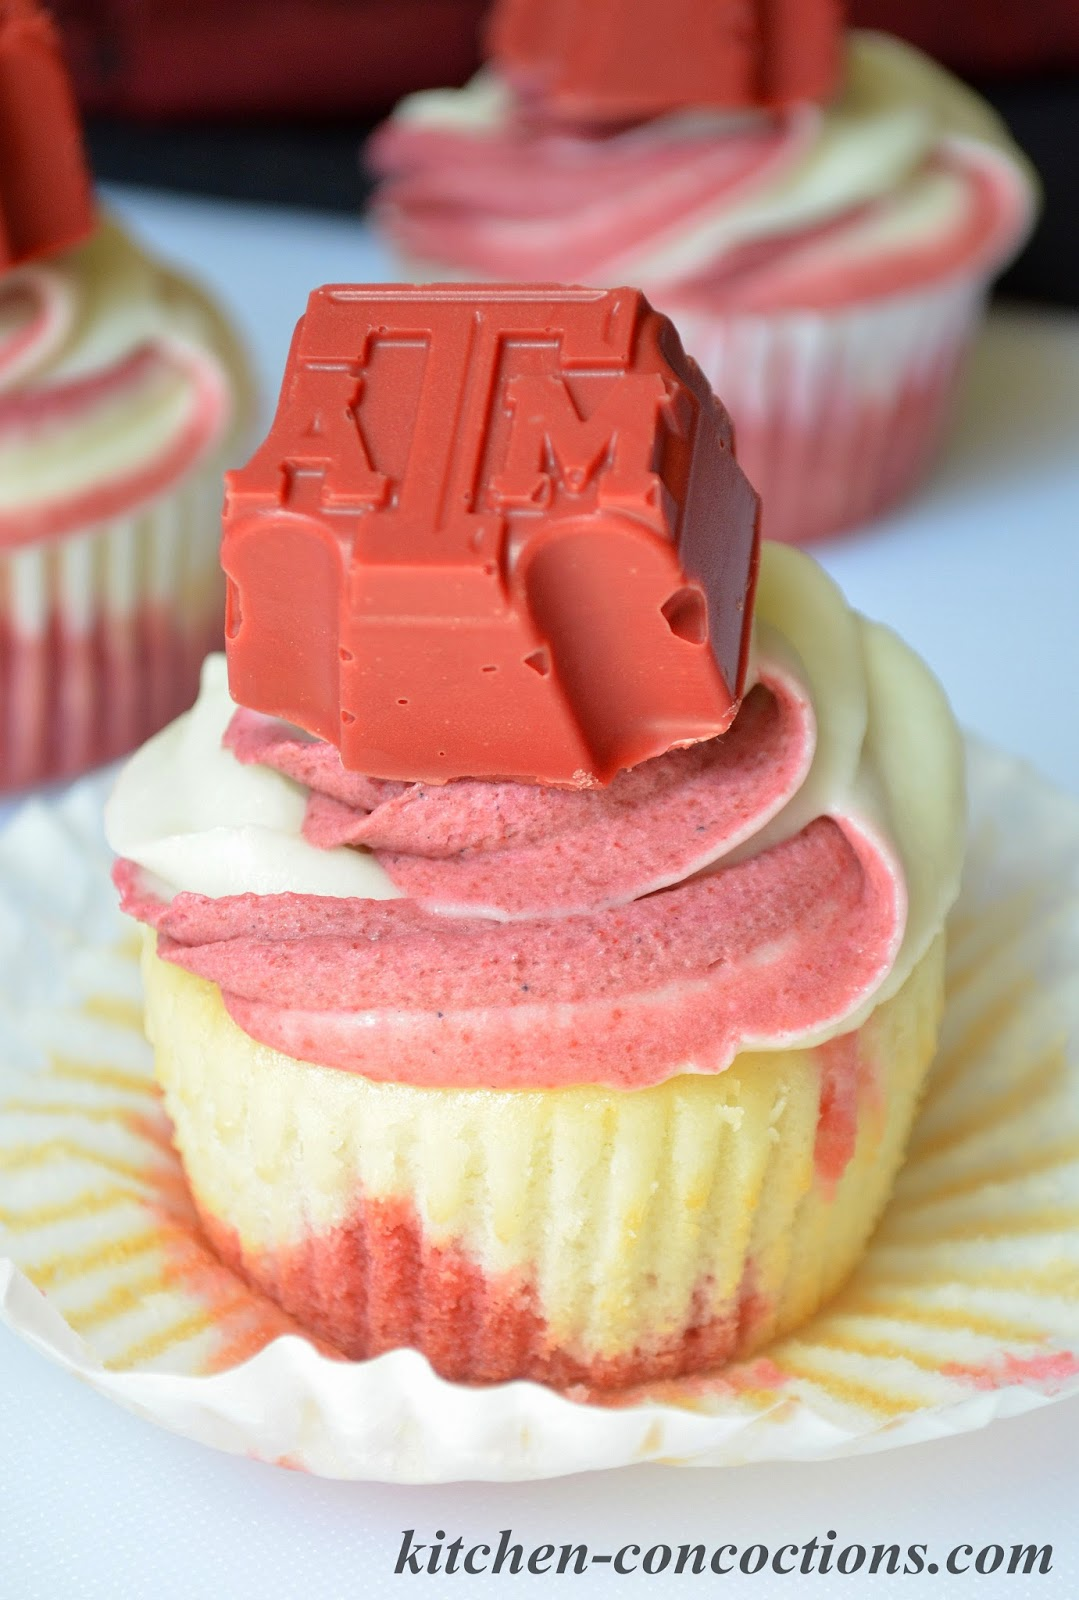 Tailgating Recipes: Game Day Cupcakes - Kitchen Concoctions